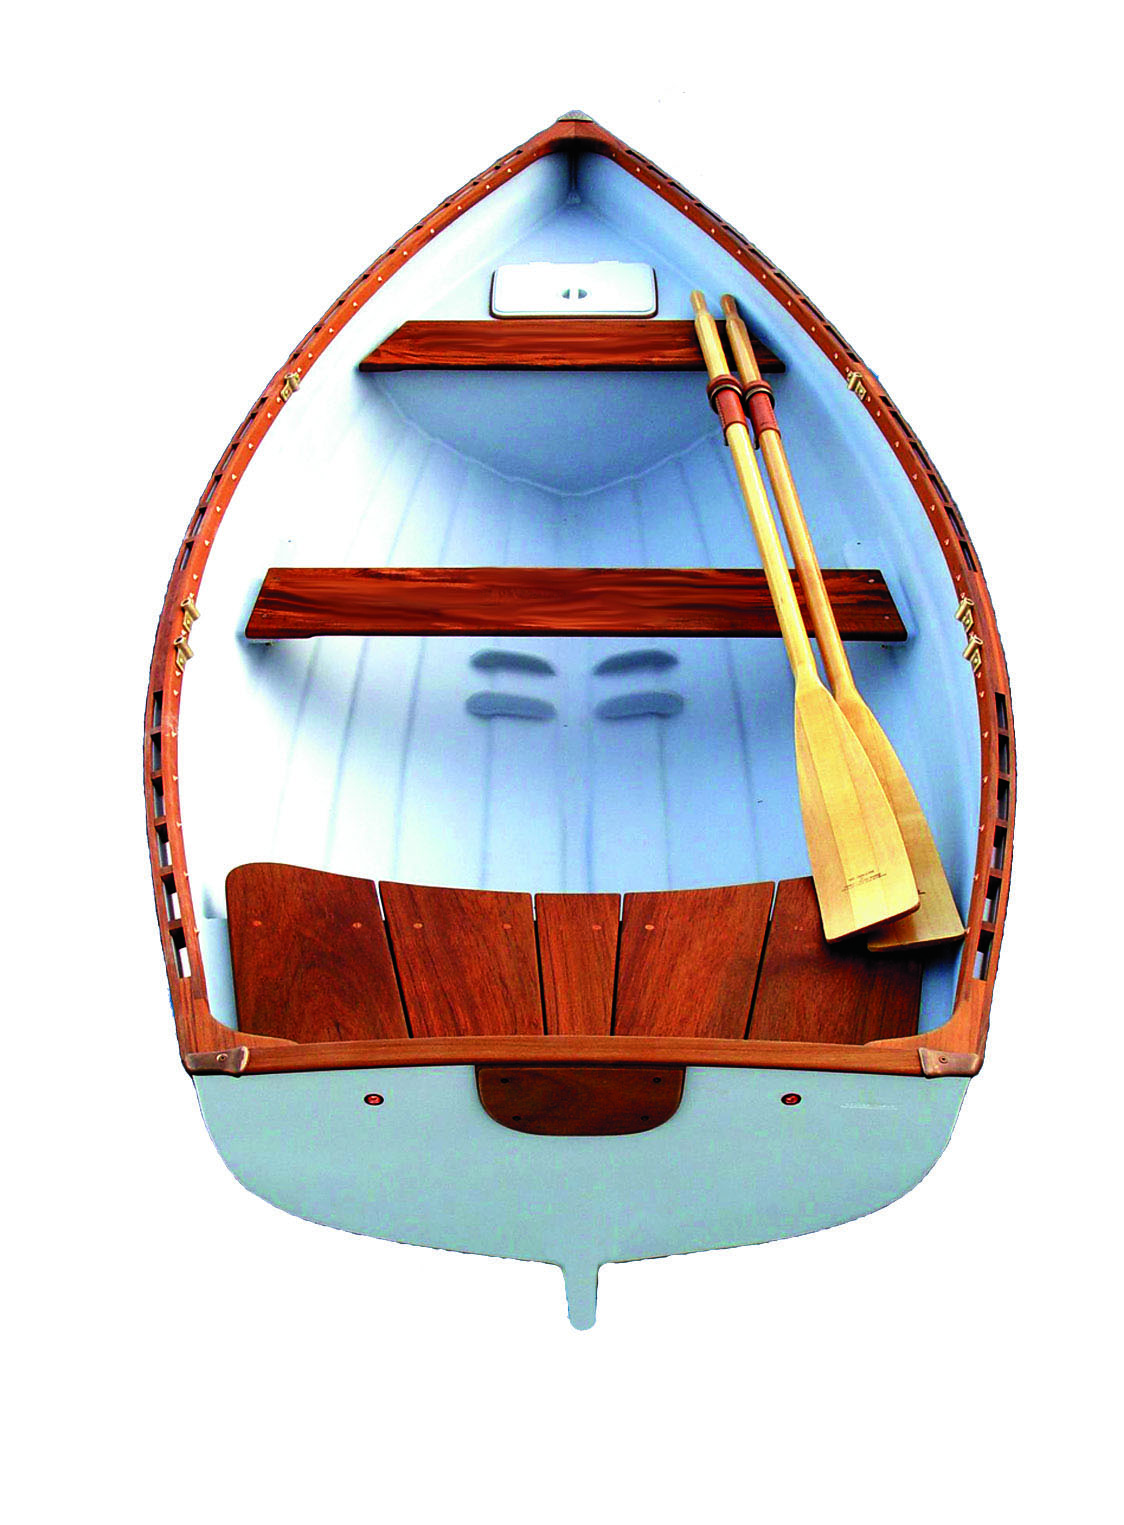 Westcoast-11-6-Traditional-Rowboat-with-Fixed-Seats-Whitehall-Rowing-and-Sail